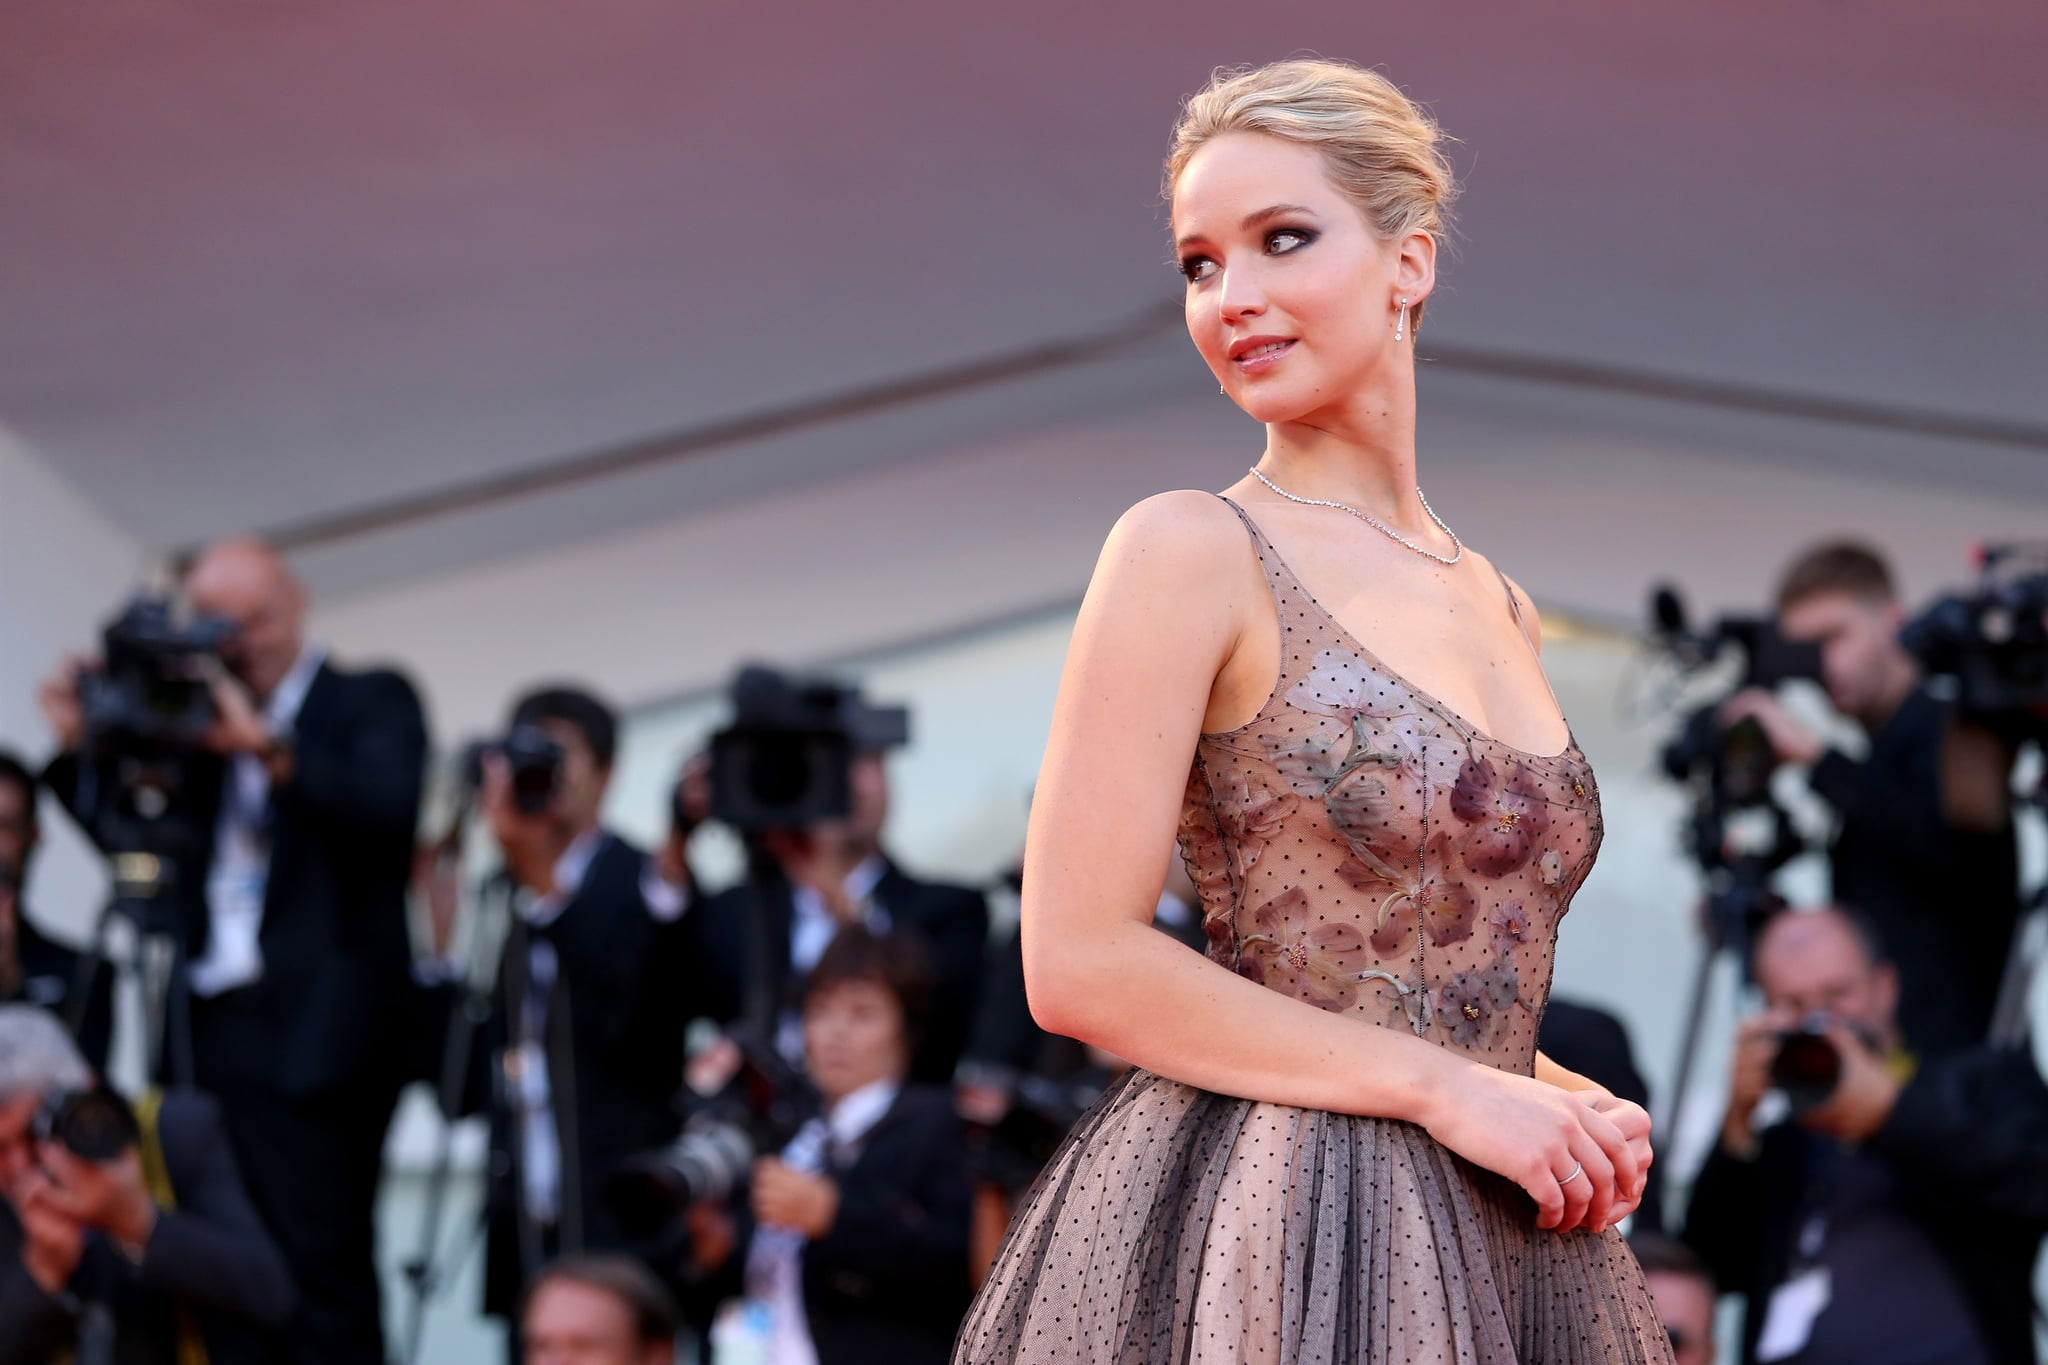 Did you know! JLaw auditioned for Blake Lively's role in 'Gossip Girl'